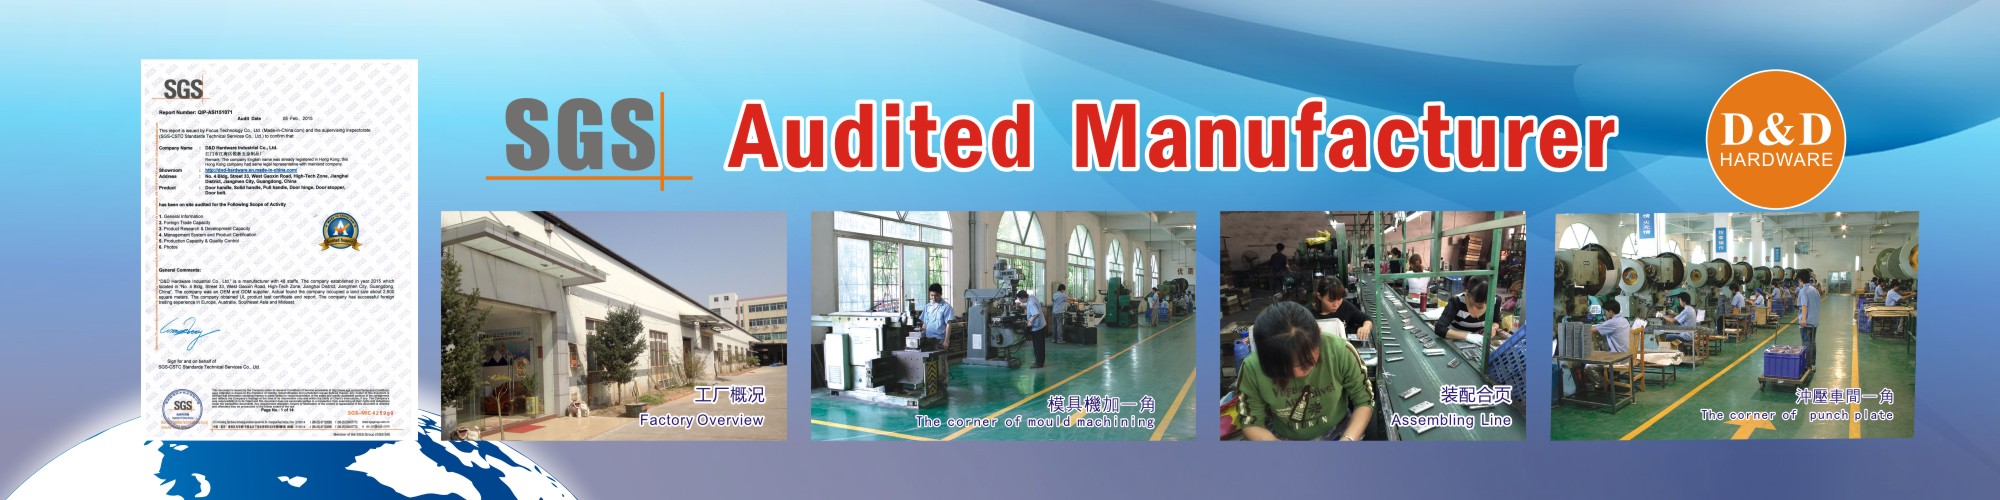 SGS Audited Manufacturer-Door Hardware Manufacturer